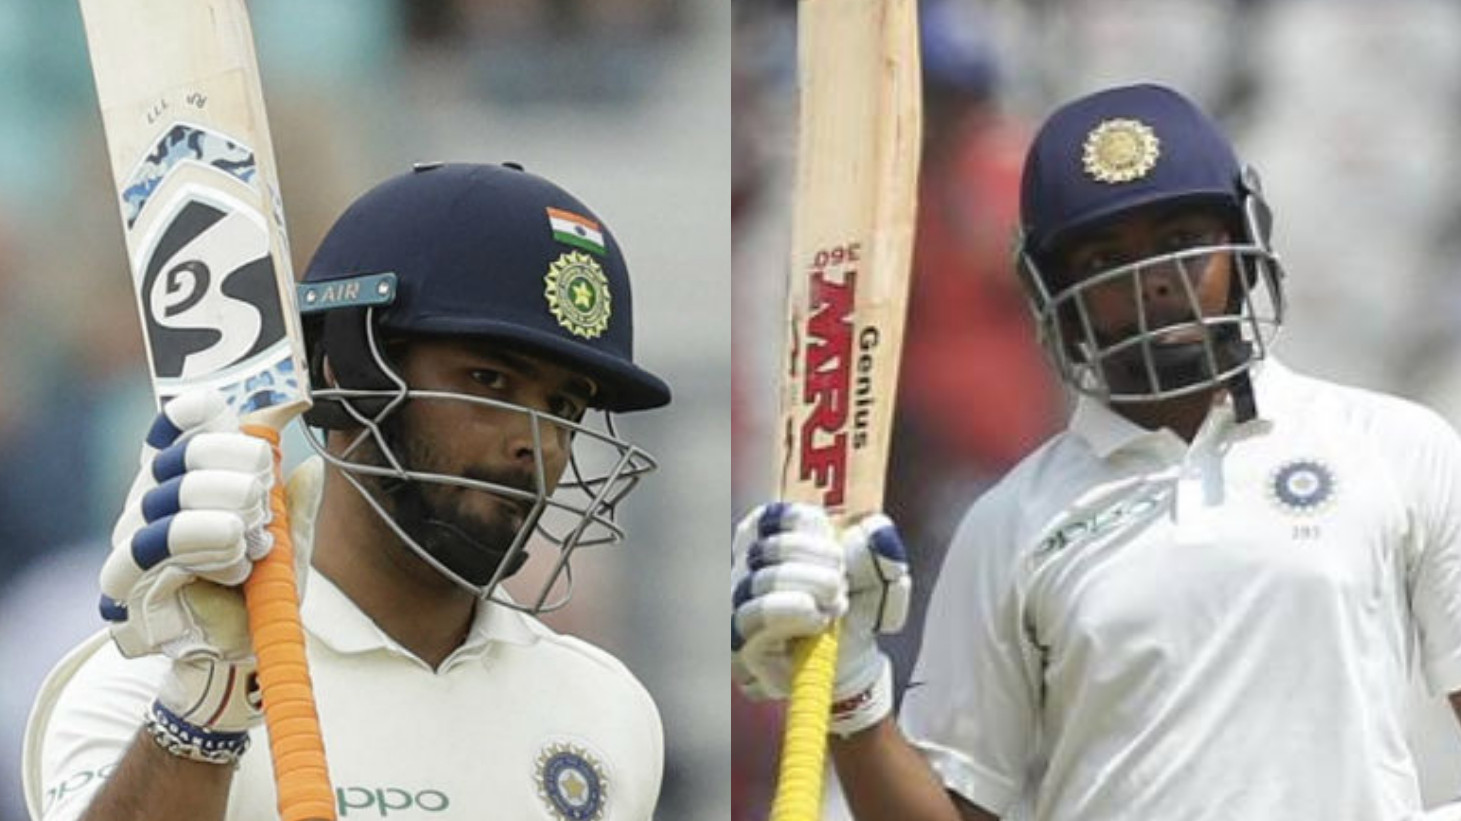 IND v WI 2018: 2nd Test, Day 2- India ends day on 308/4 with another Shaw and Pant show